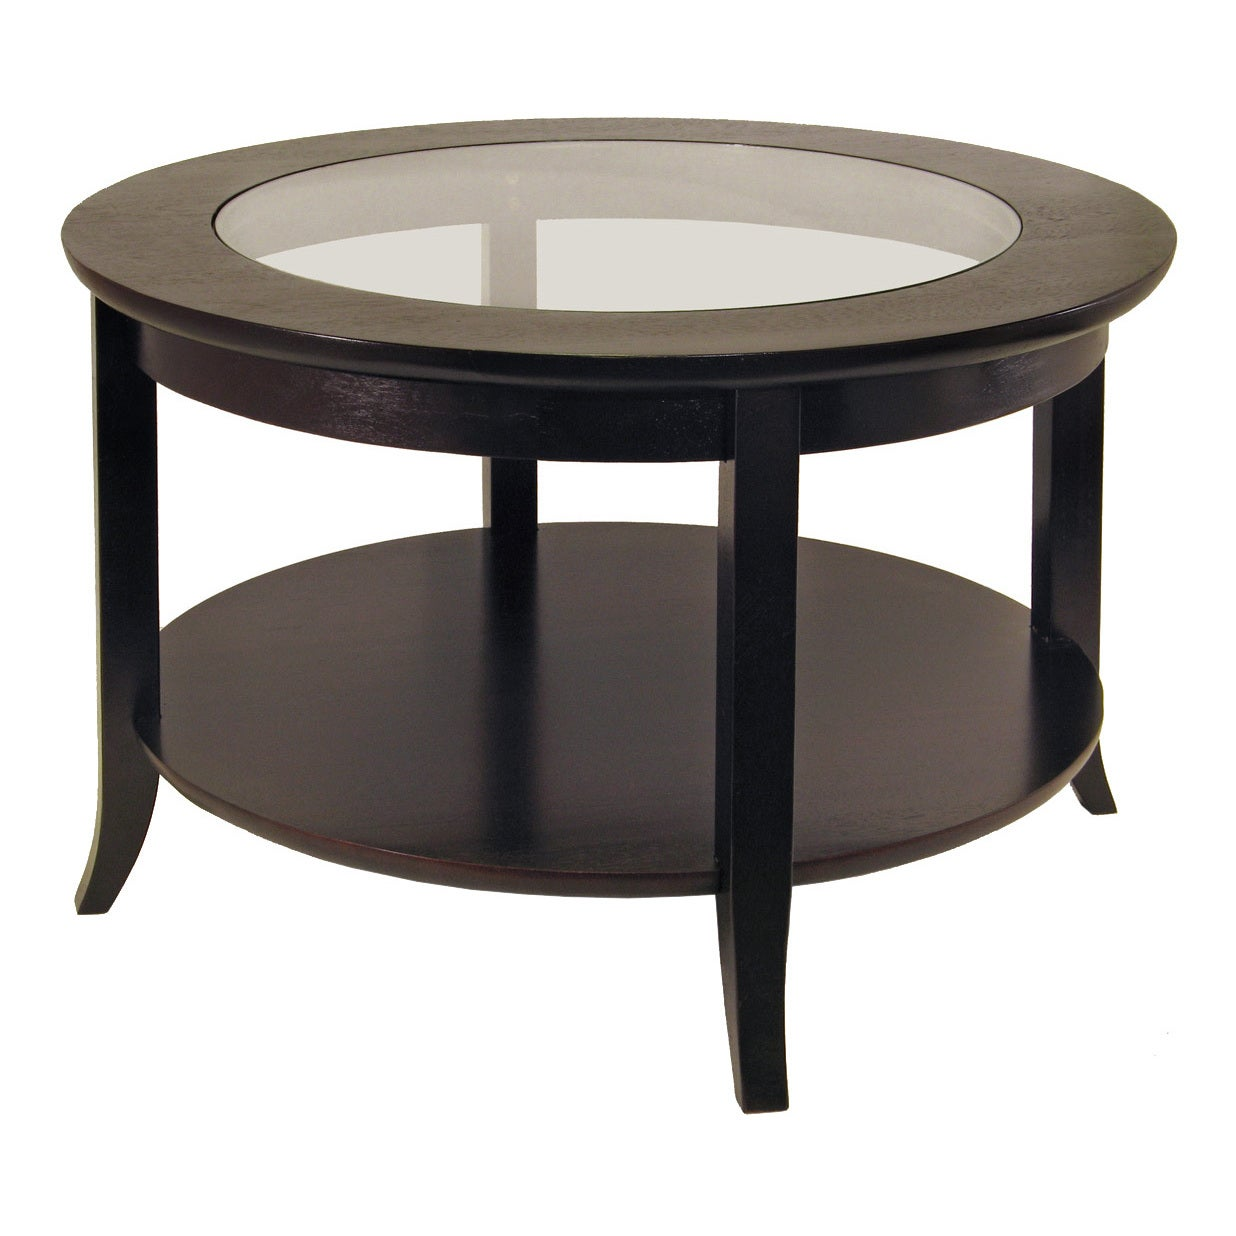 Winsome Genoa Wood/Glass Inset Coffee Table With Flared L...